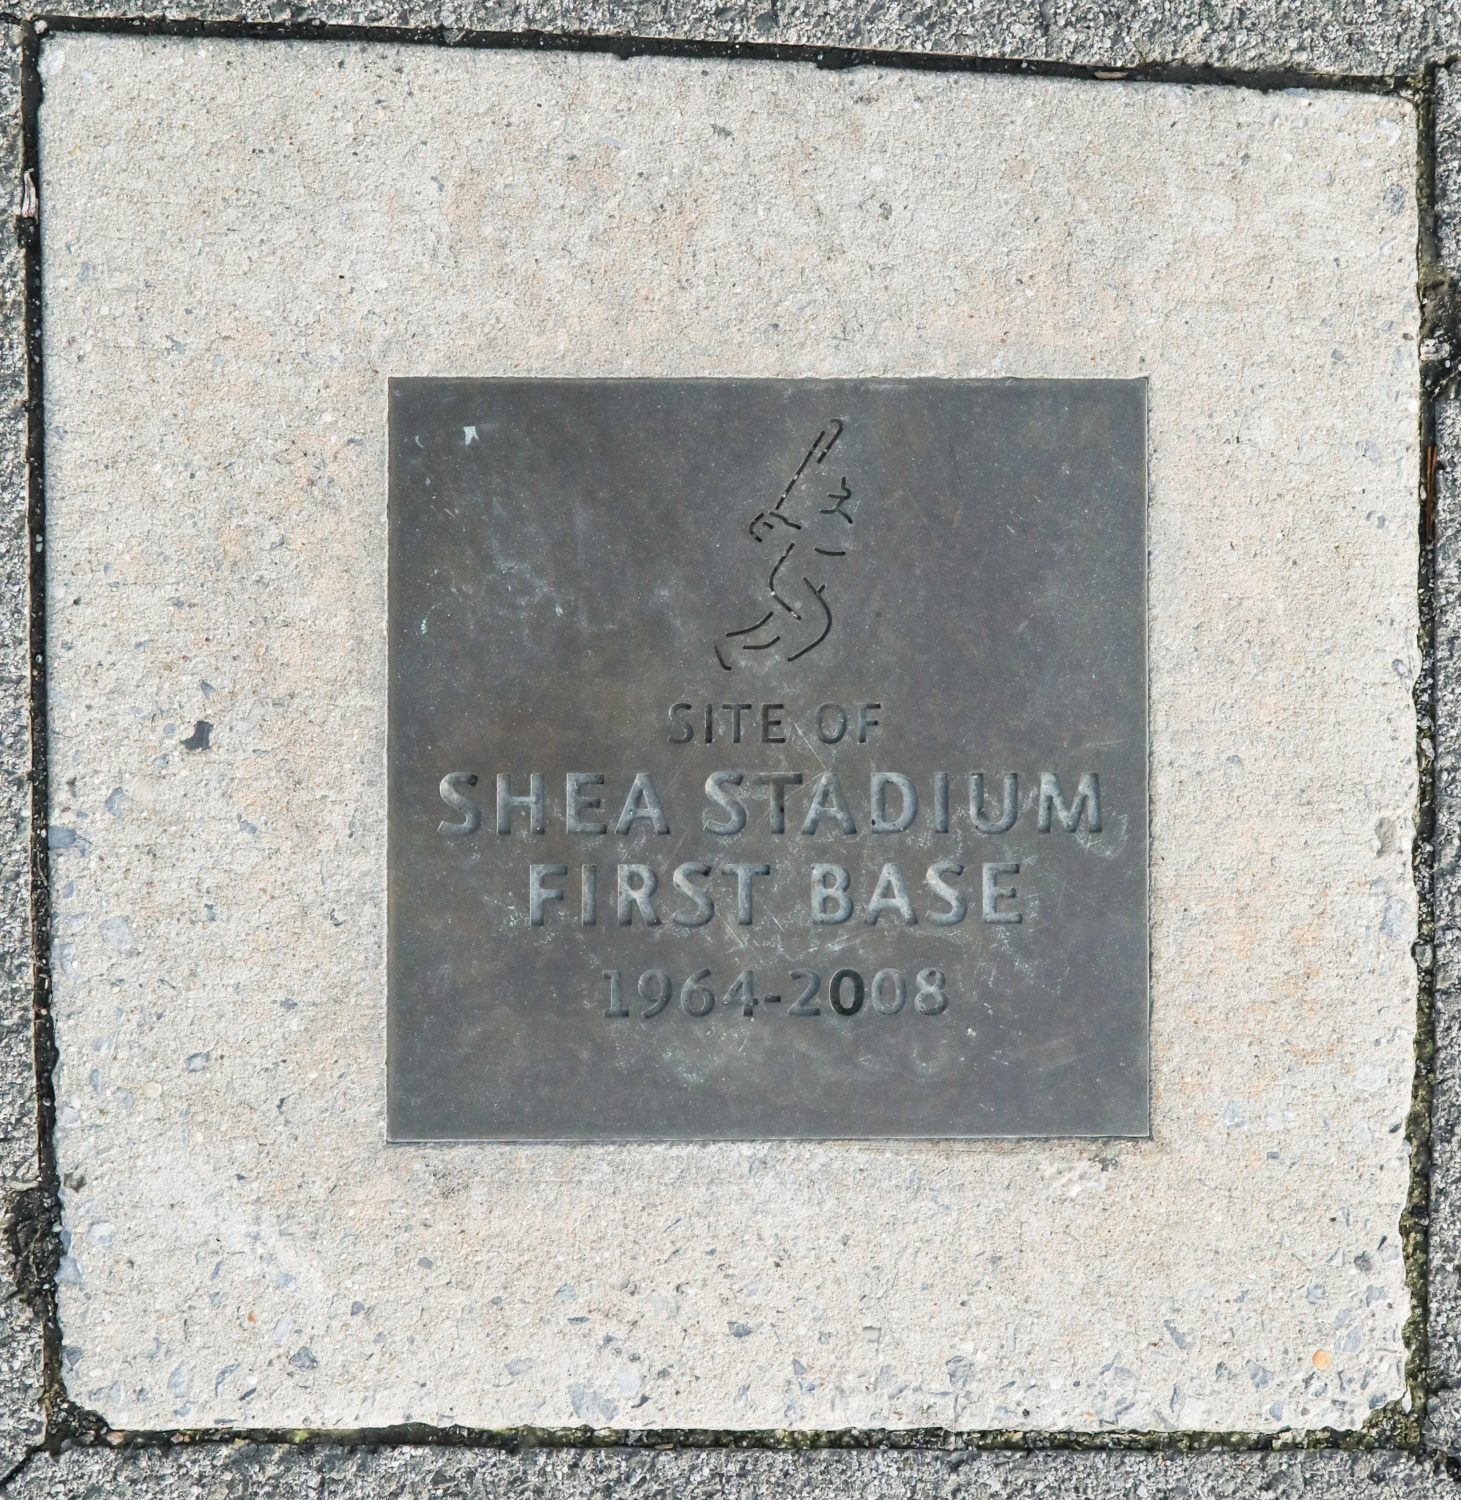 Site of Shea Stadium First Base